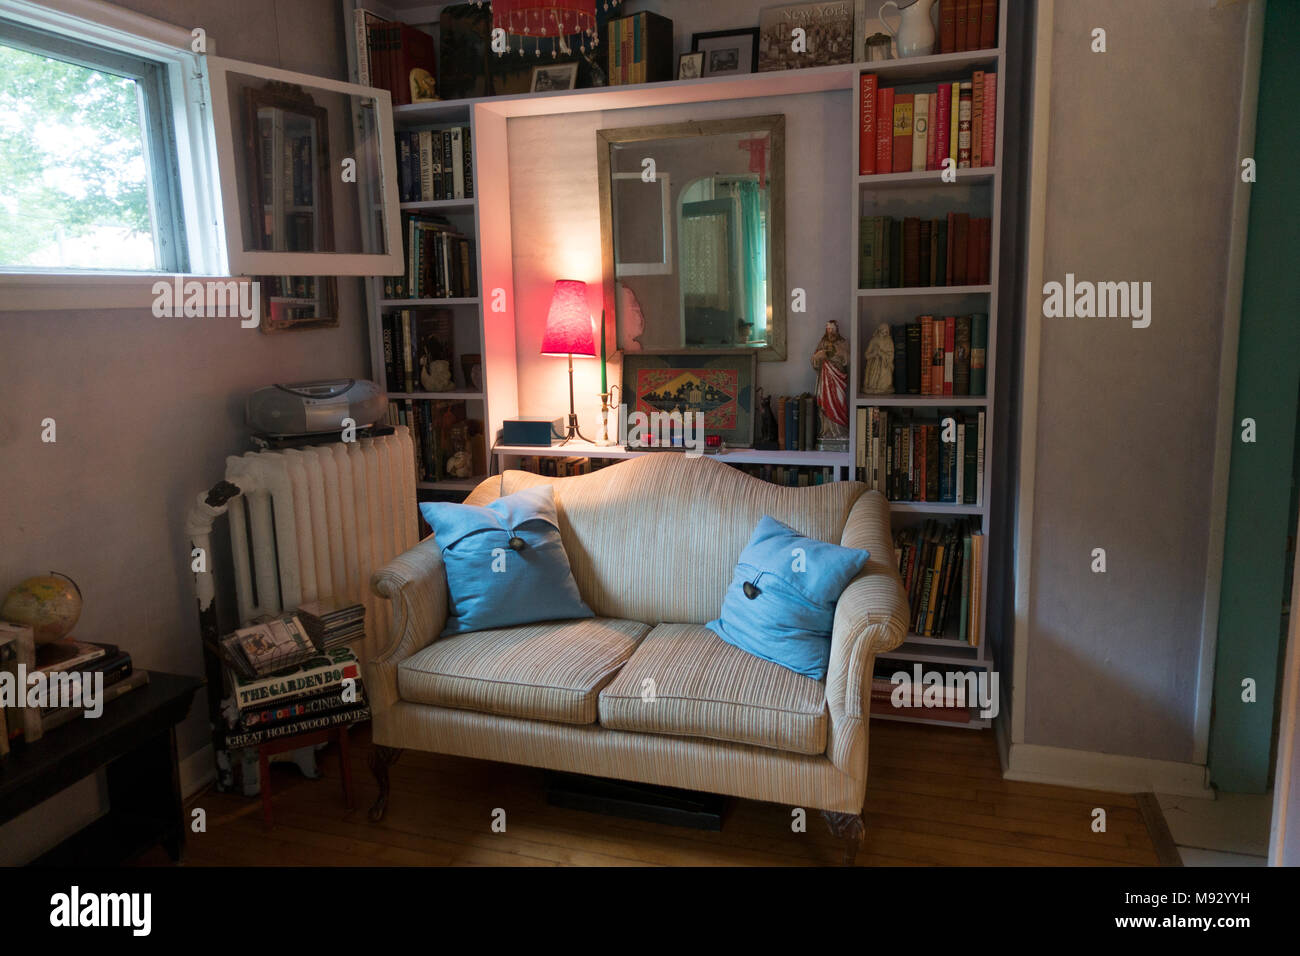 cozy corner of a tiny house with a love seat sofa surrounded by books and objets